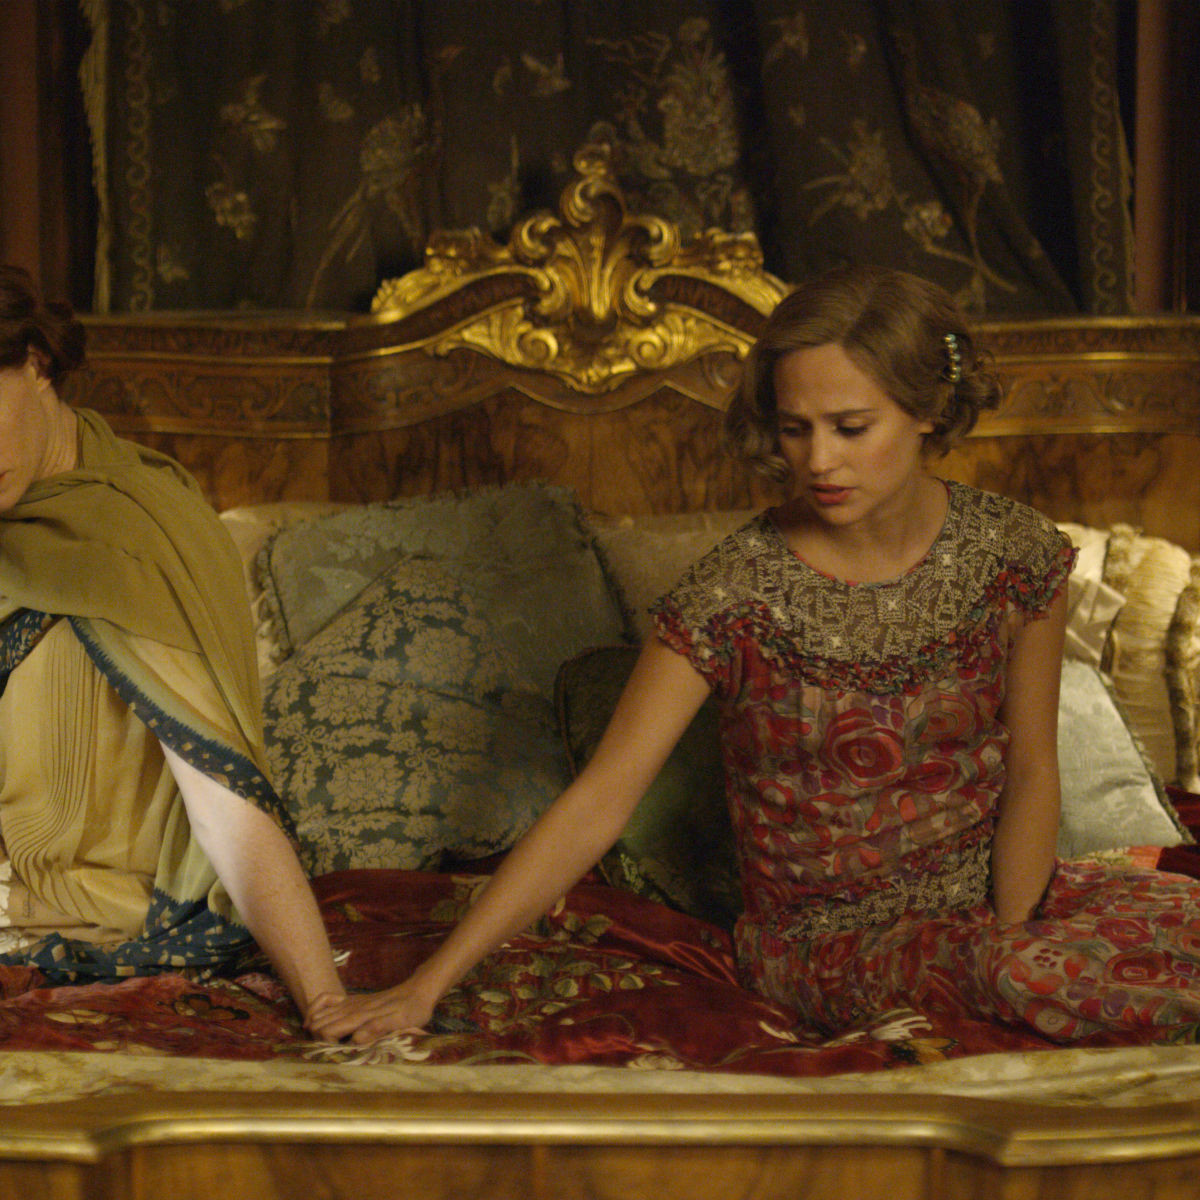 Eddie Redmayne and Alicia Vikander in The Danish Girl